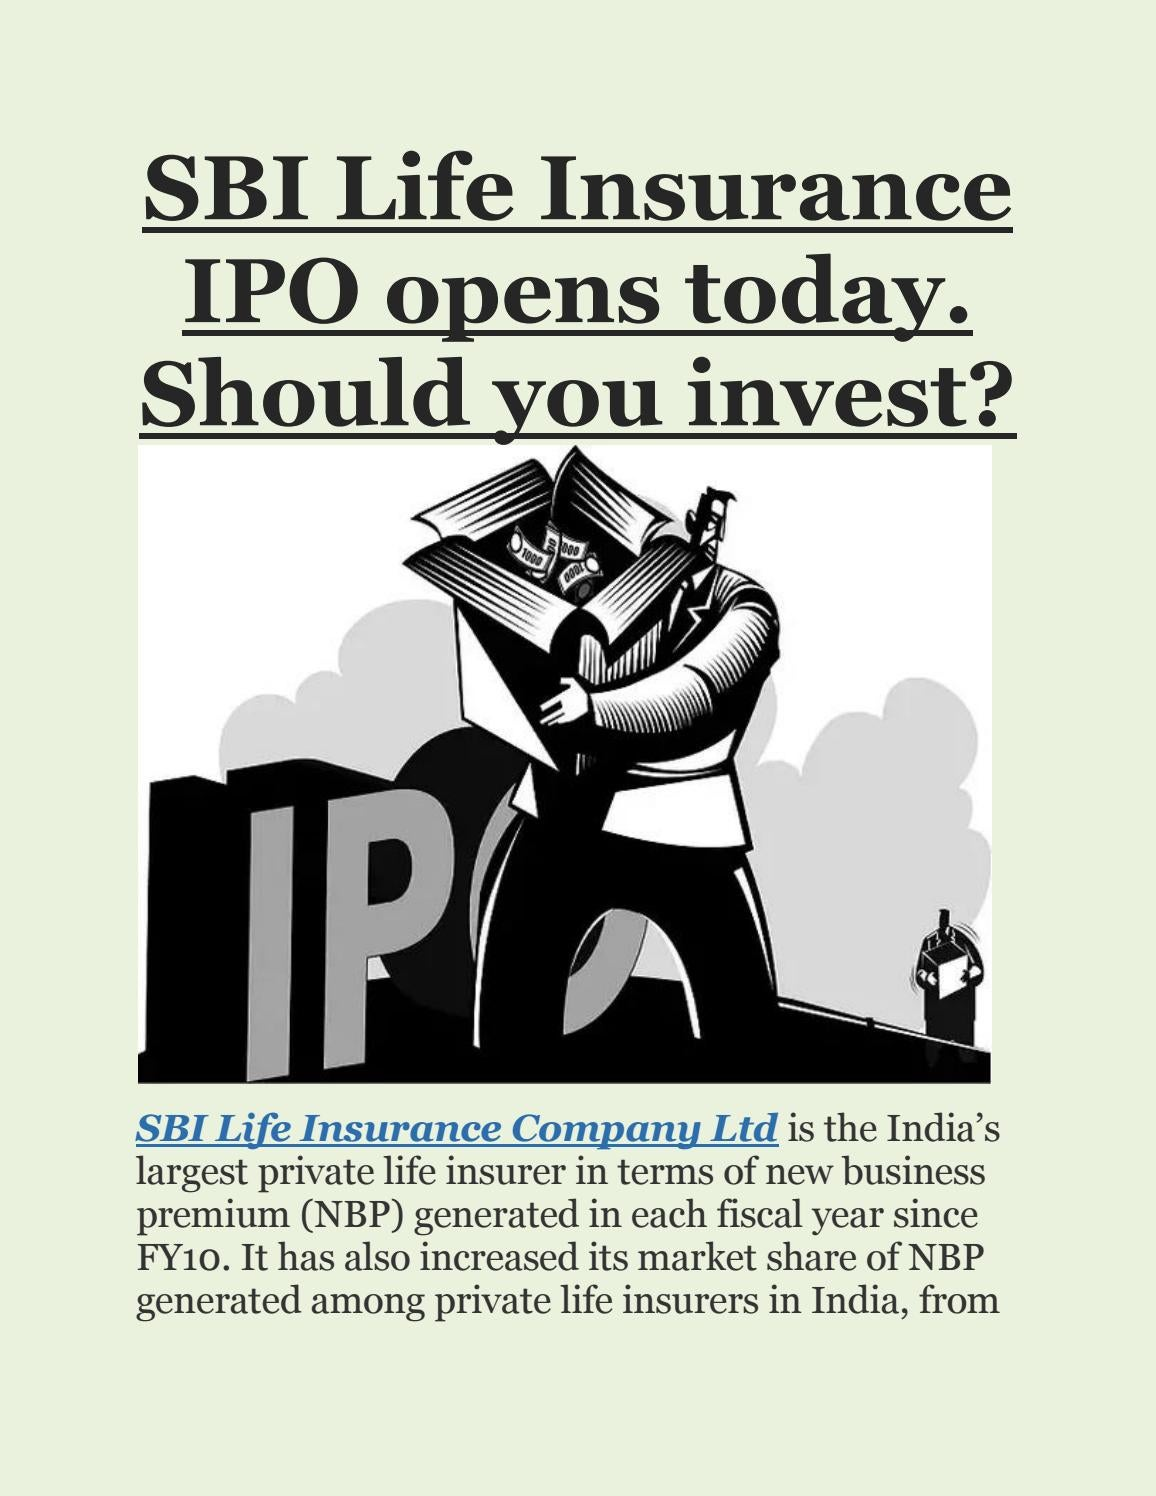 Should we invest in sbi ipo